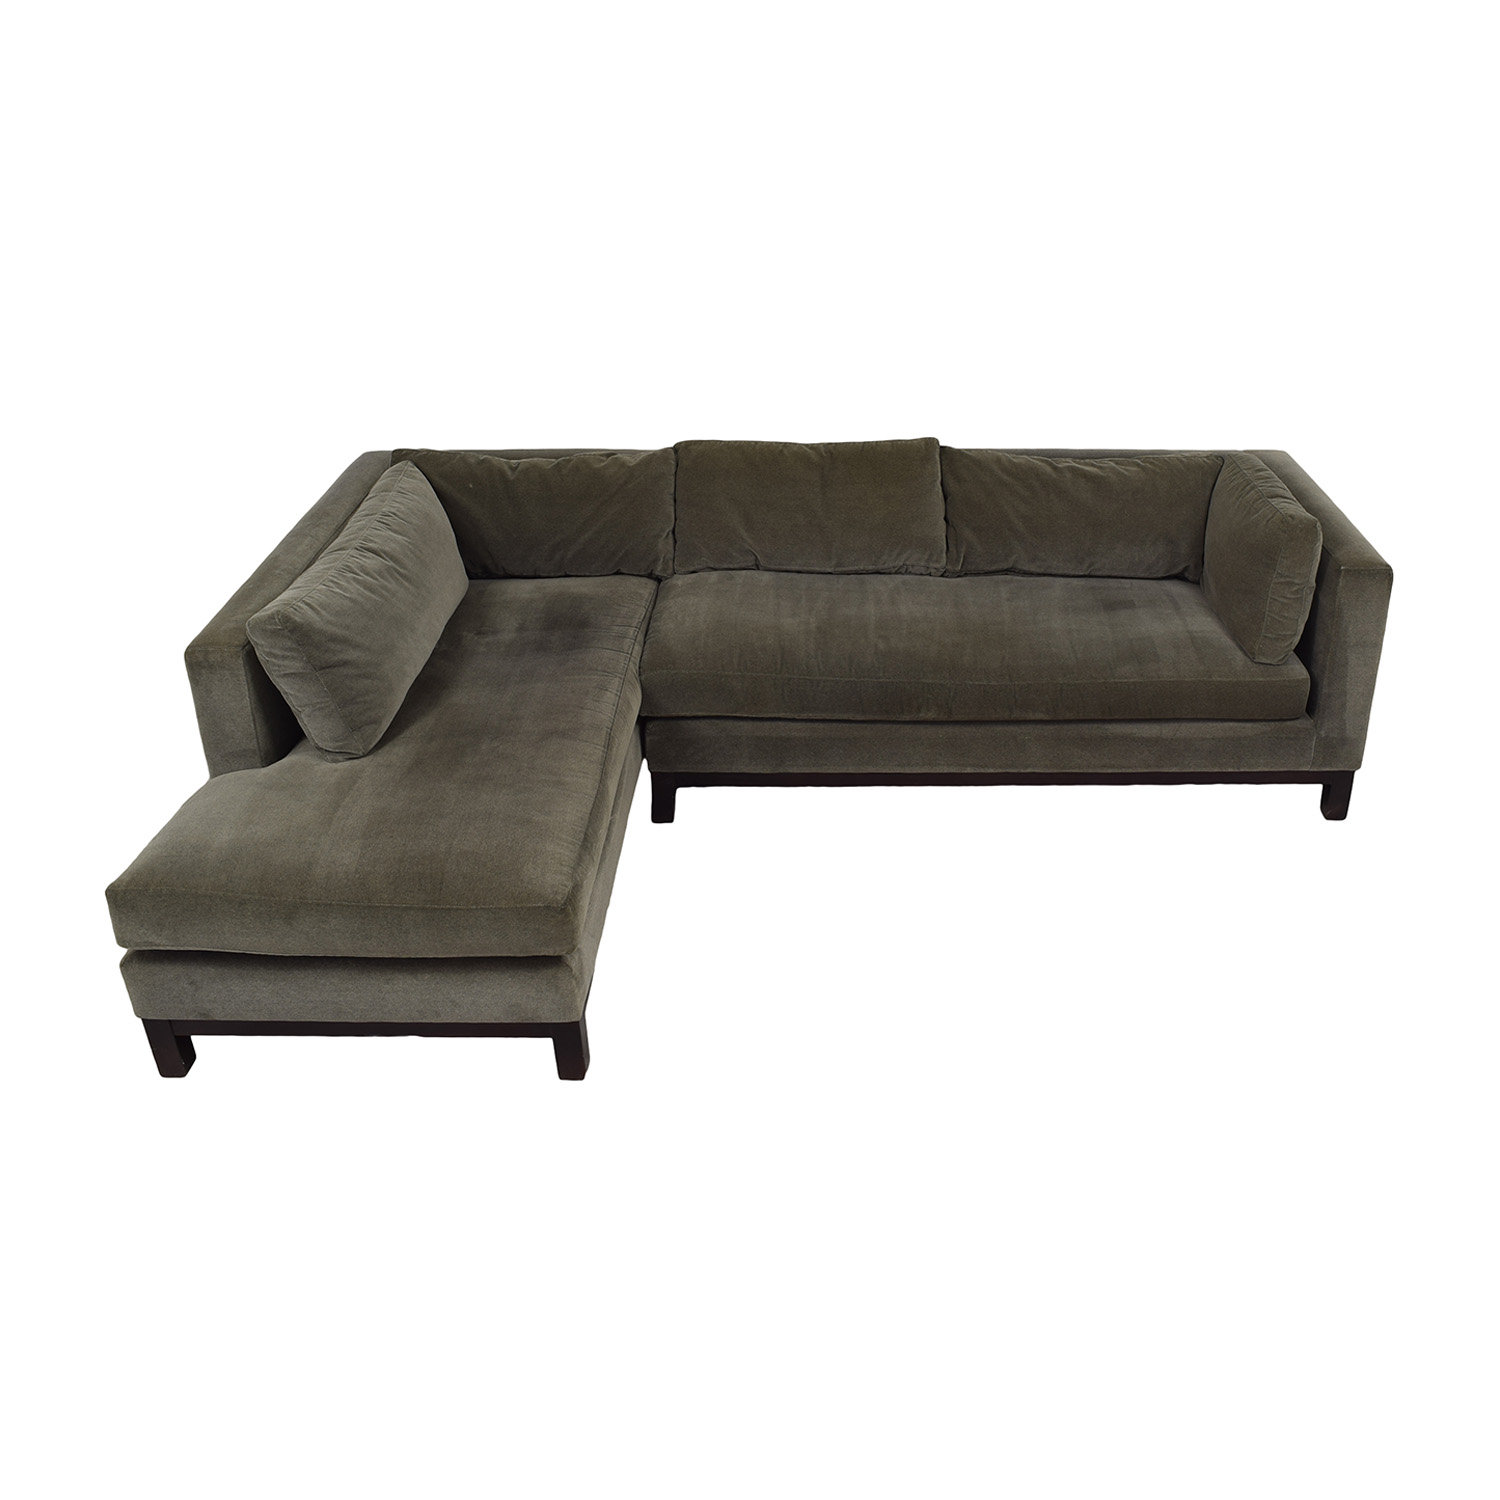 buy Crate & Barrel Brown L-Shaped Sectional Crate & Barrel Sectionals